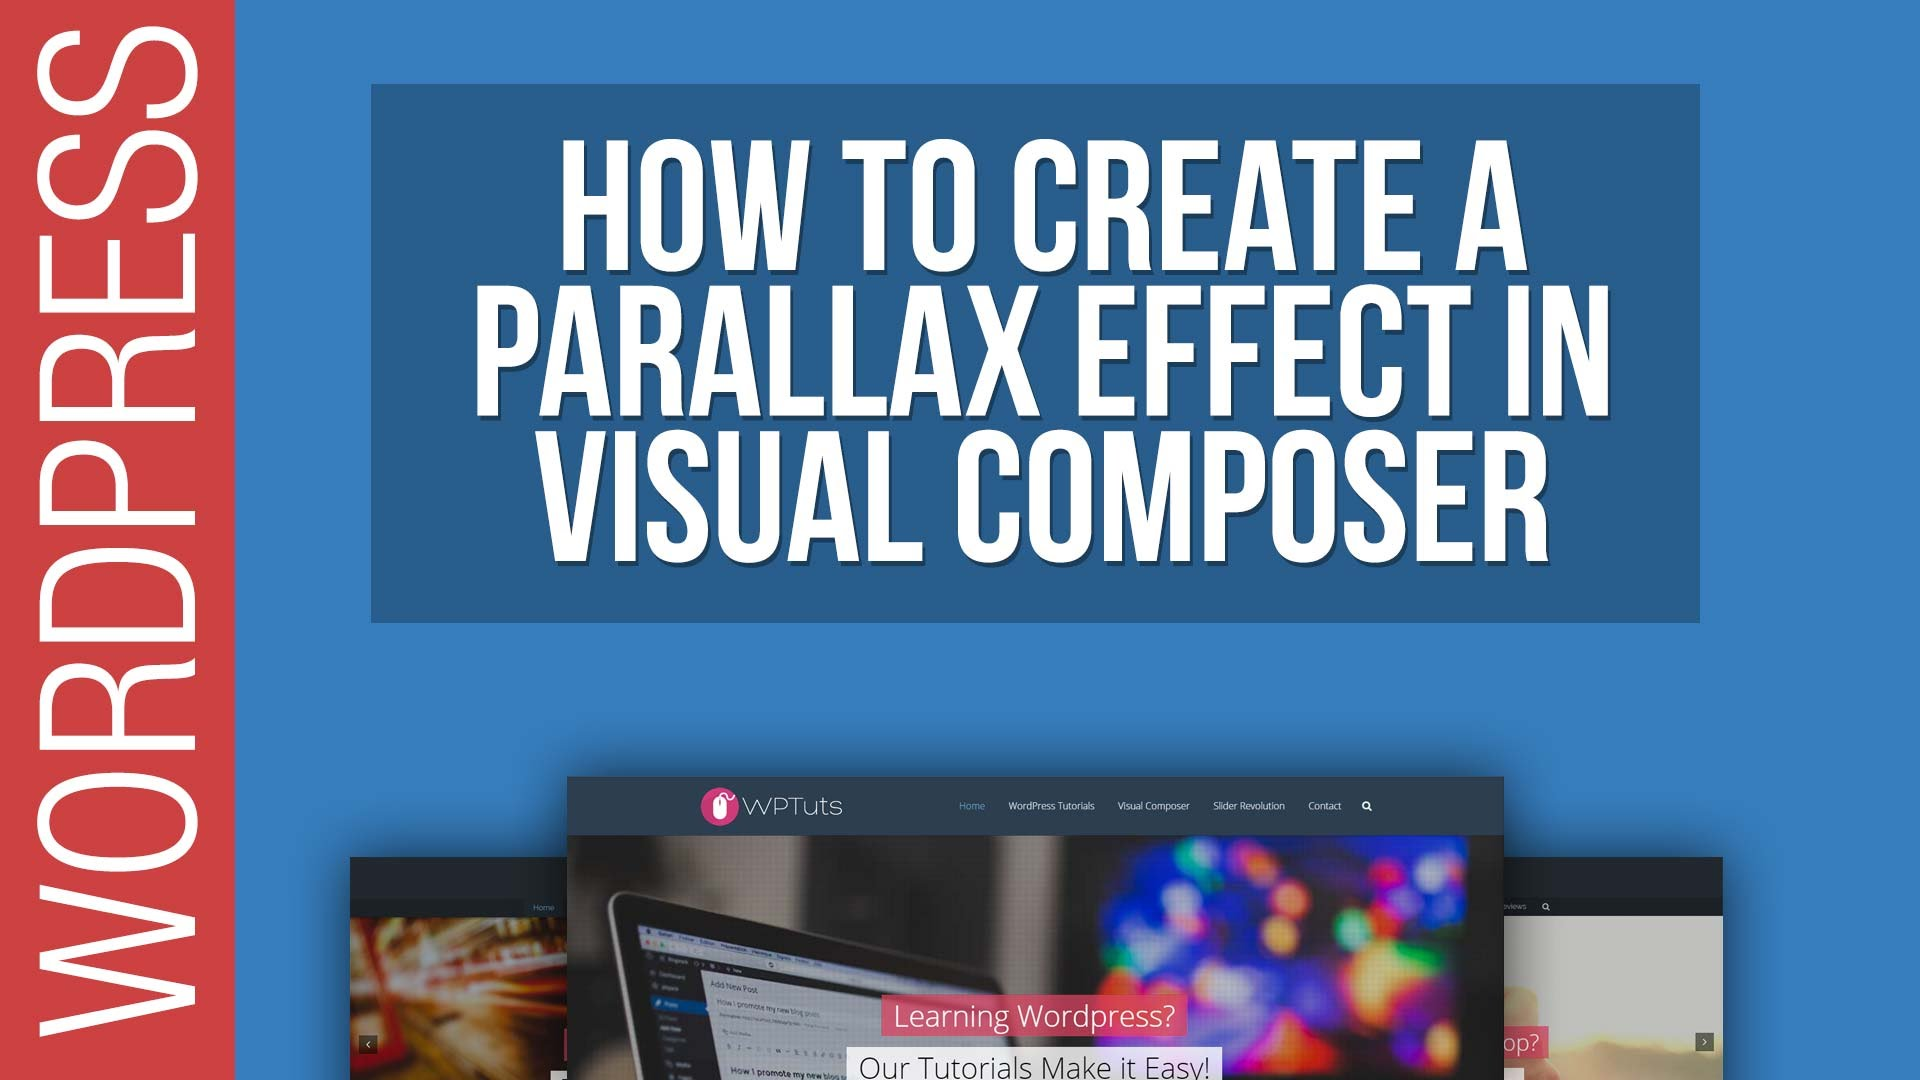 How To Create Parallax Row Backgrounds in Visual Composer for WordPress 2016